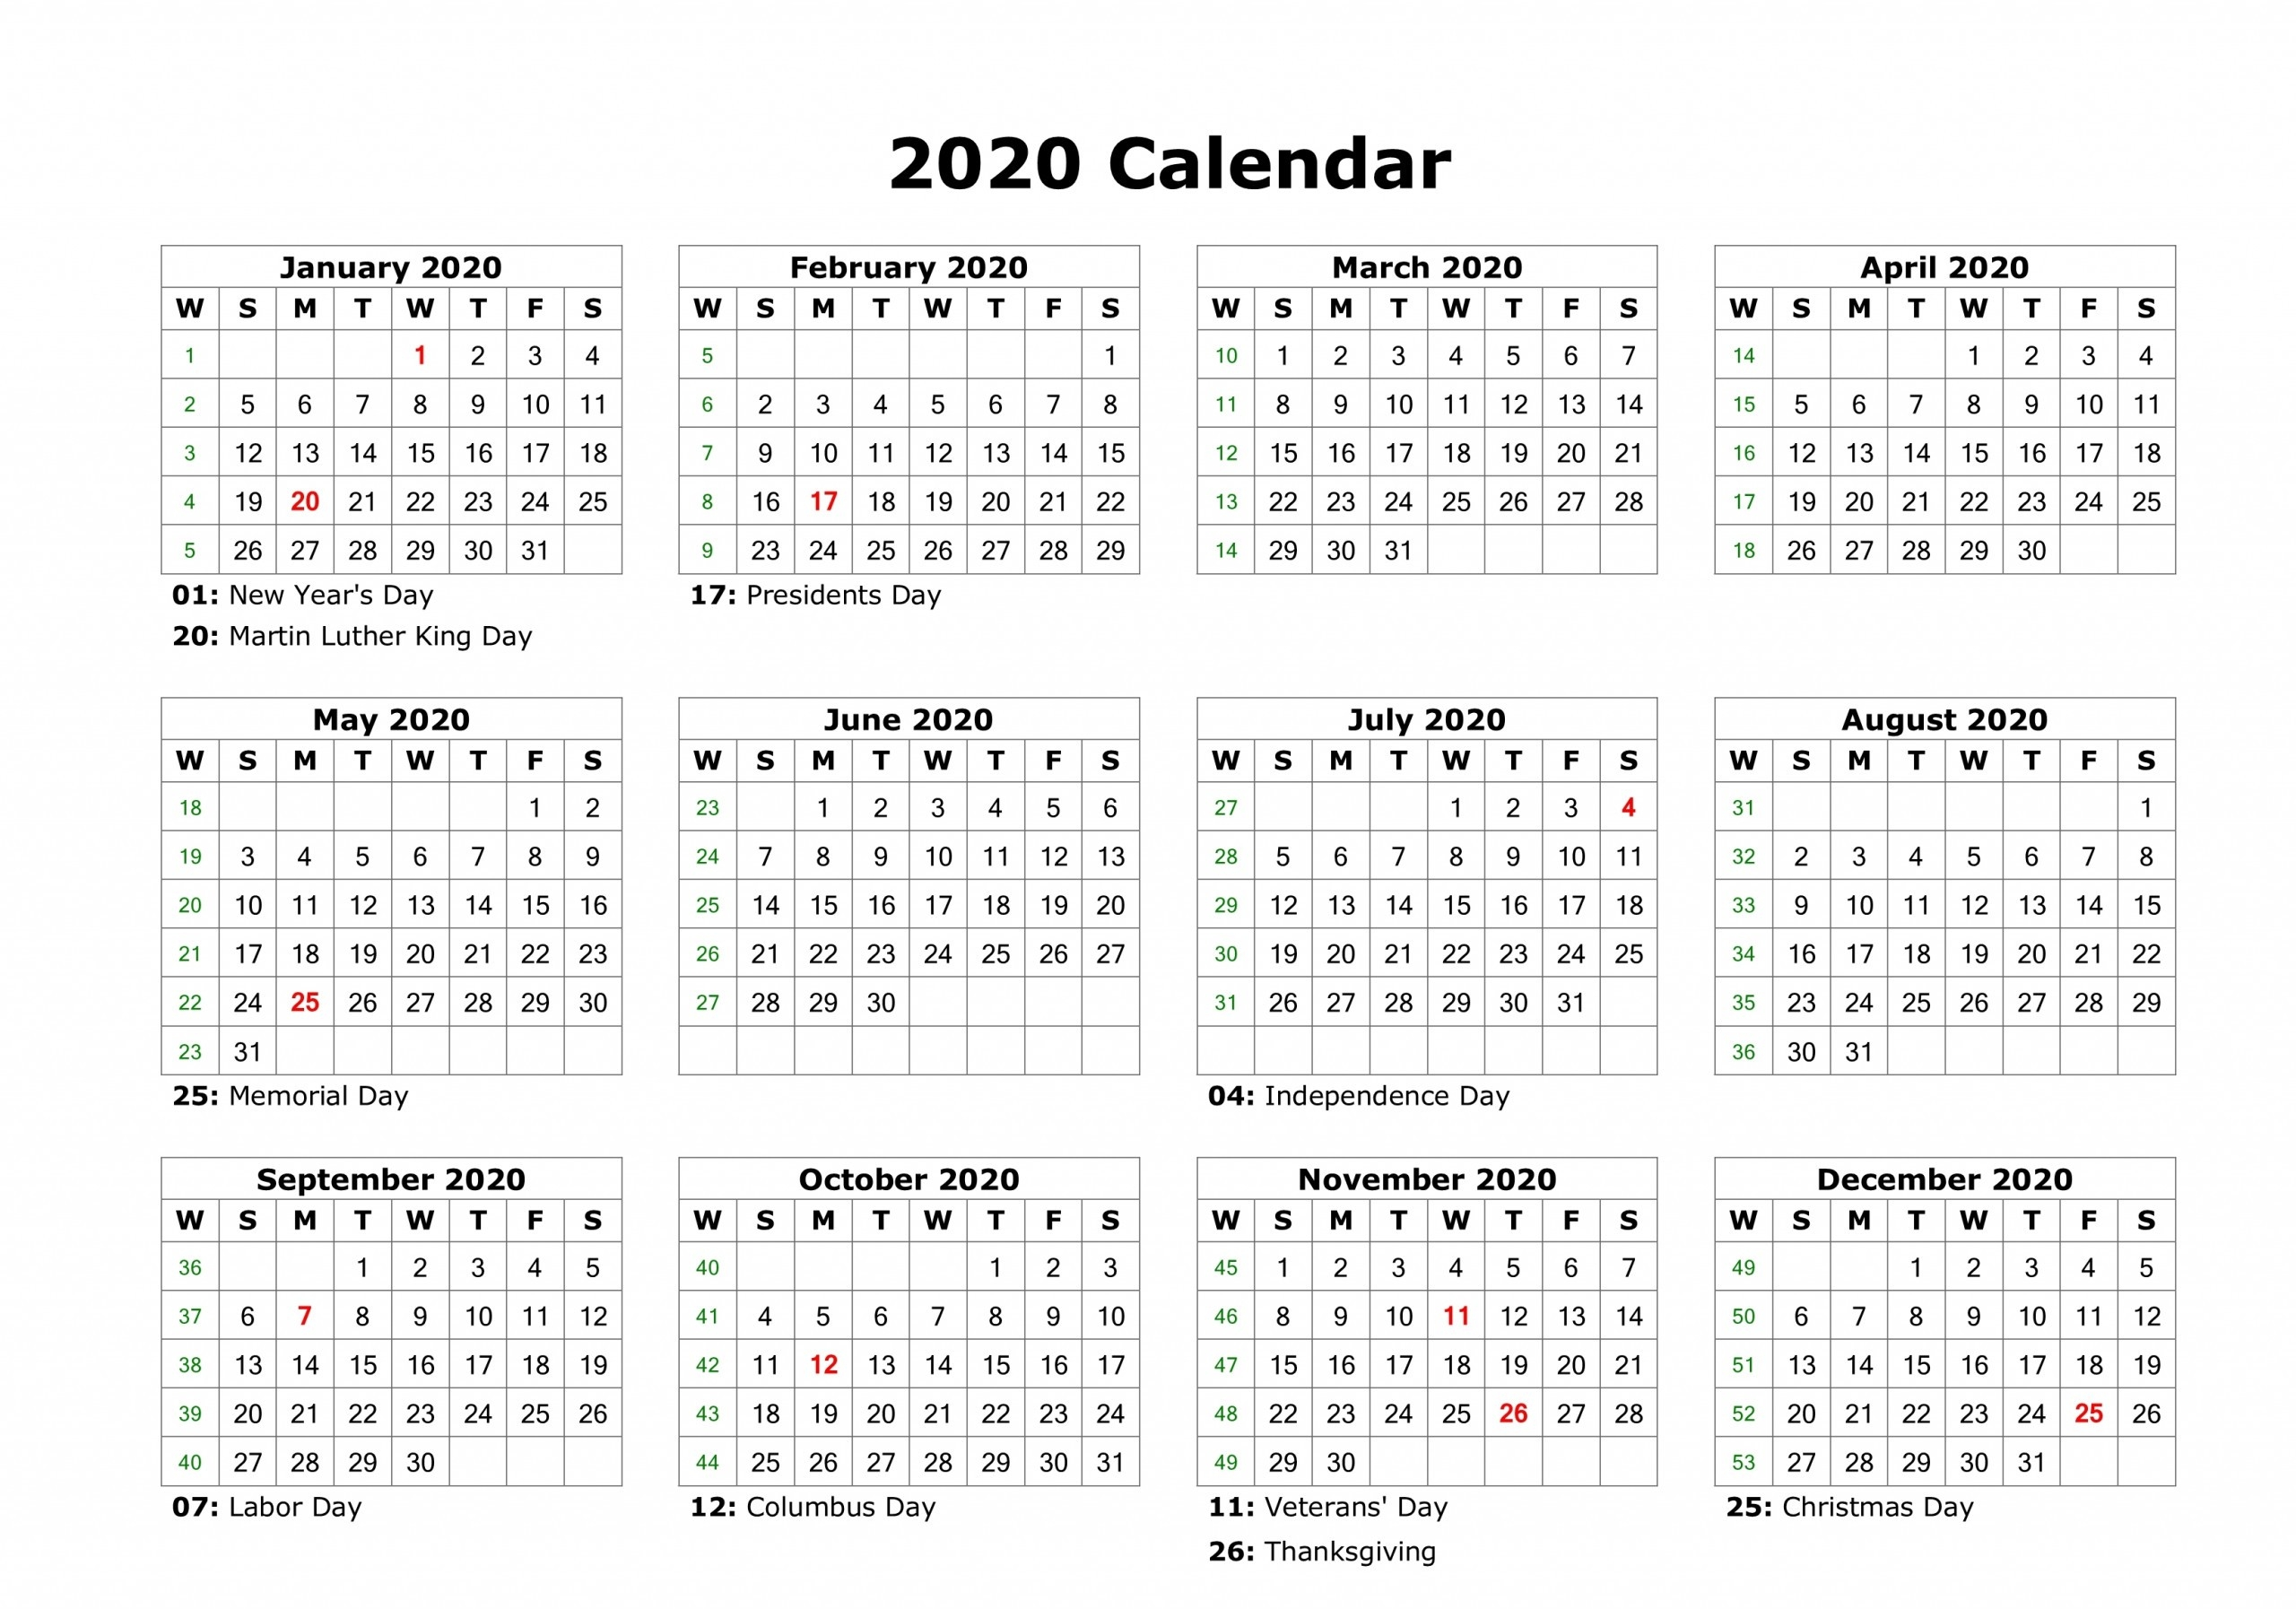 Free Yearly 12 Month Calendar One Page Template Printable  Calendar 2020 Printable One Page